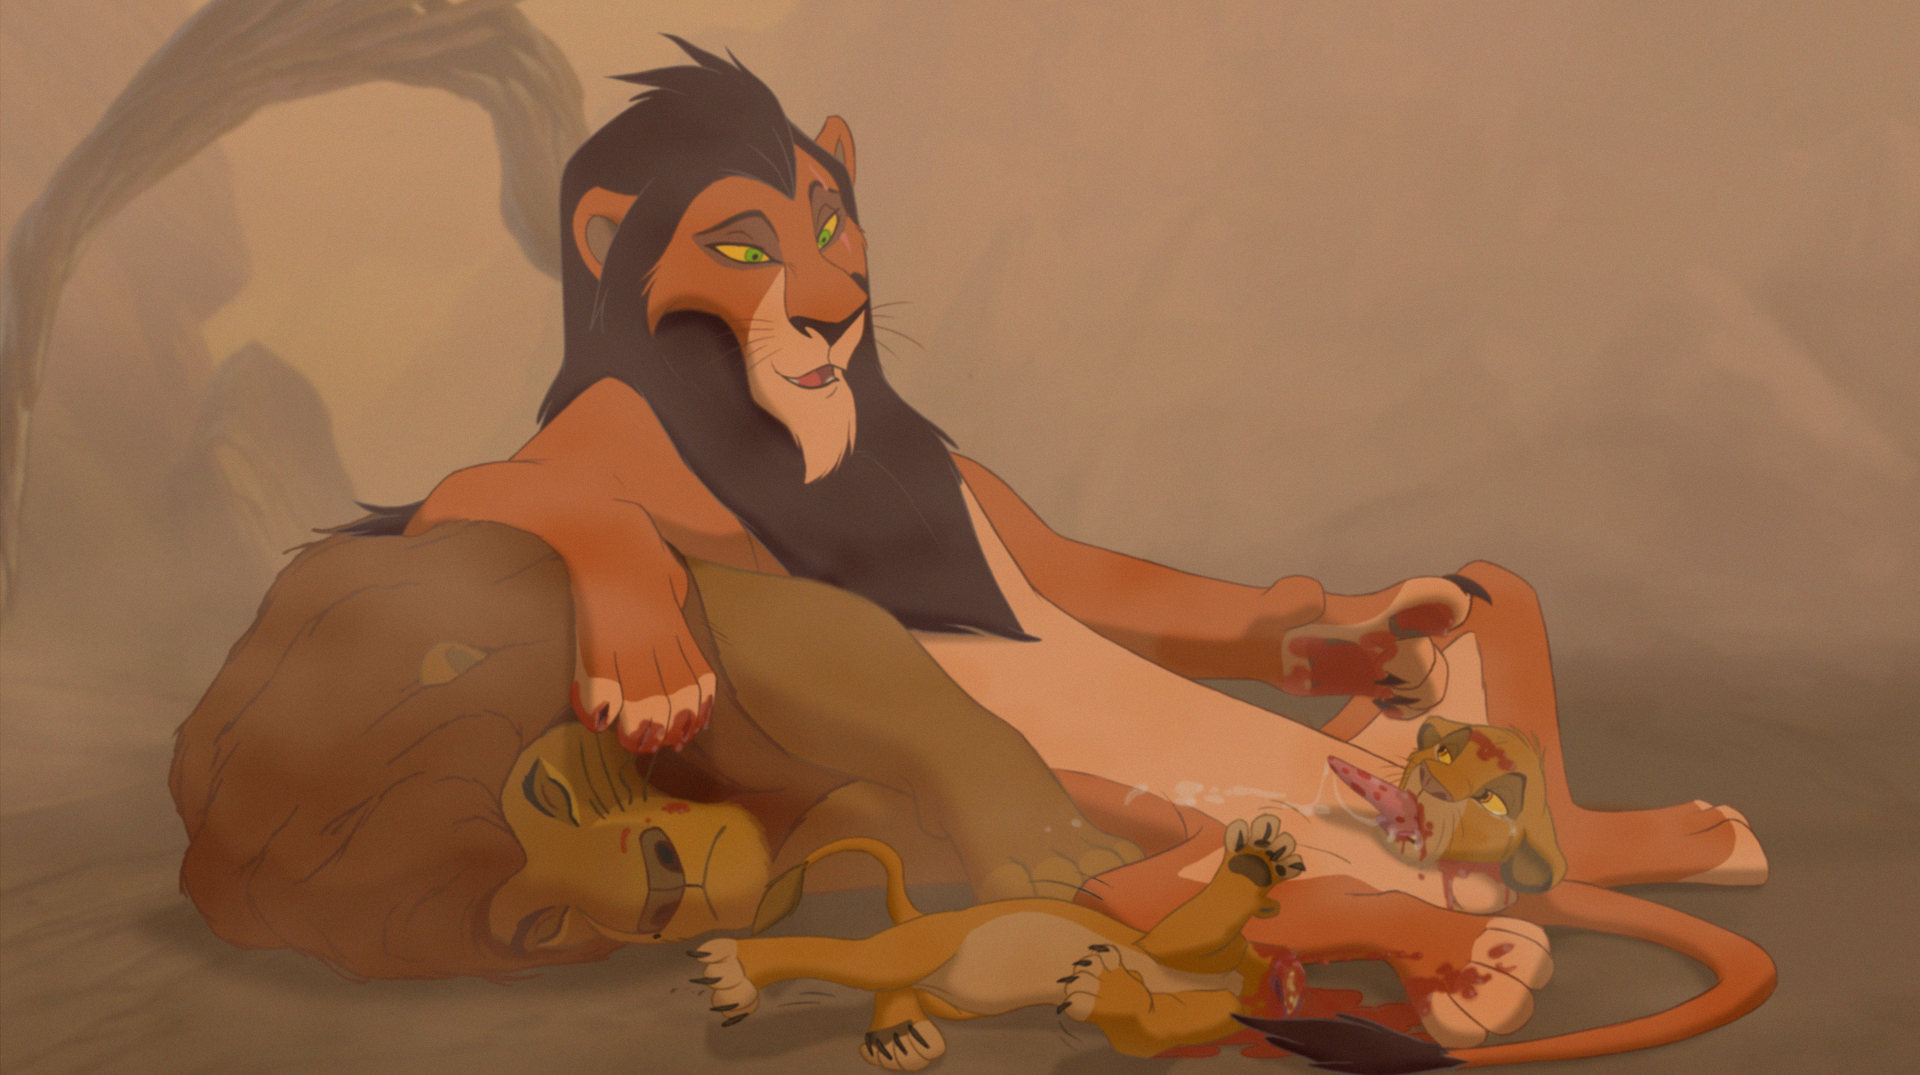 The lion king gay porn